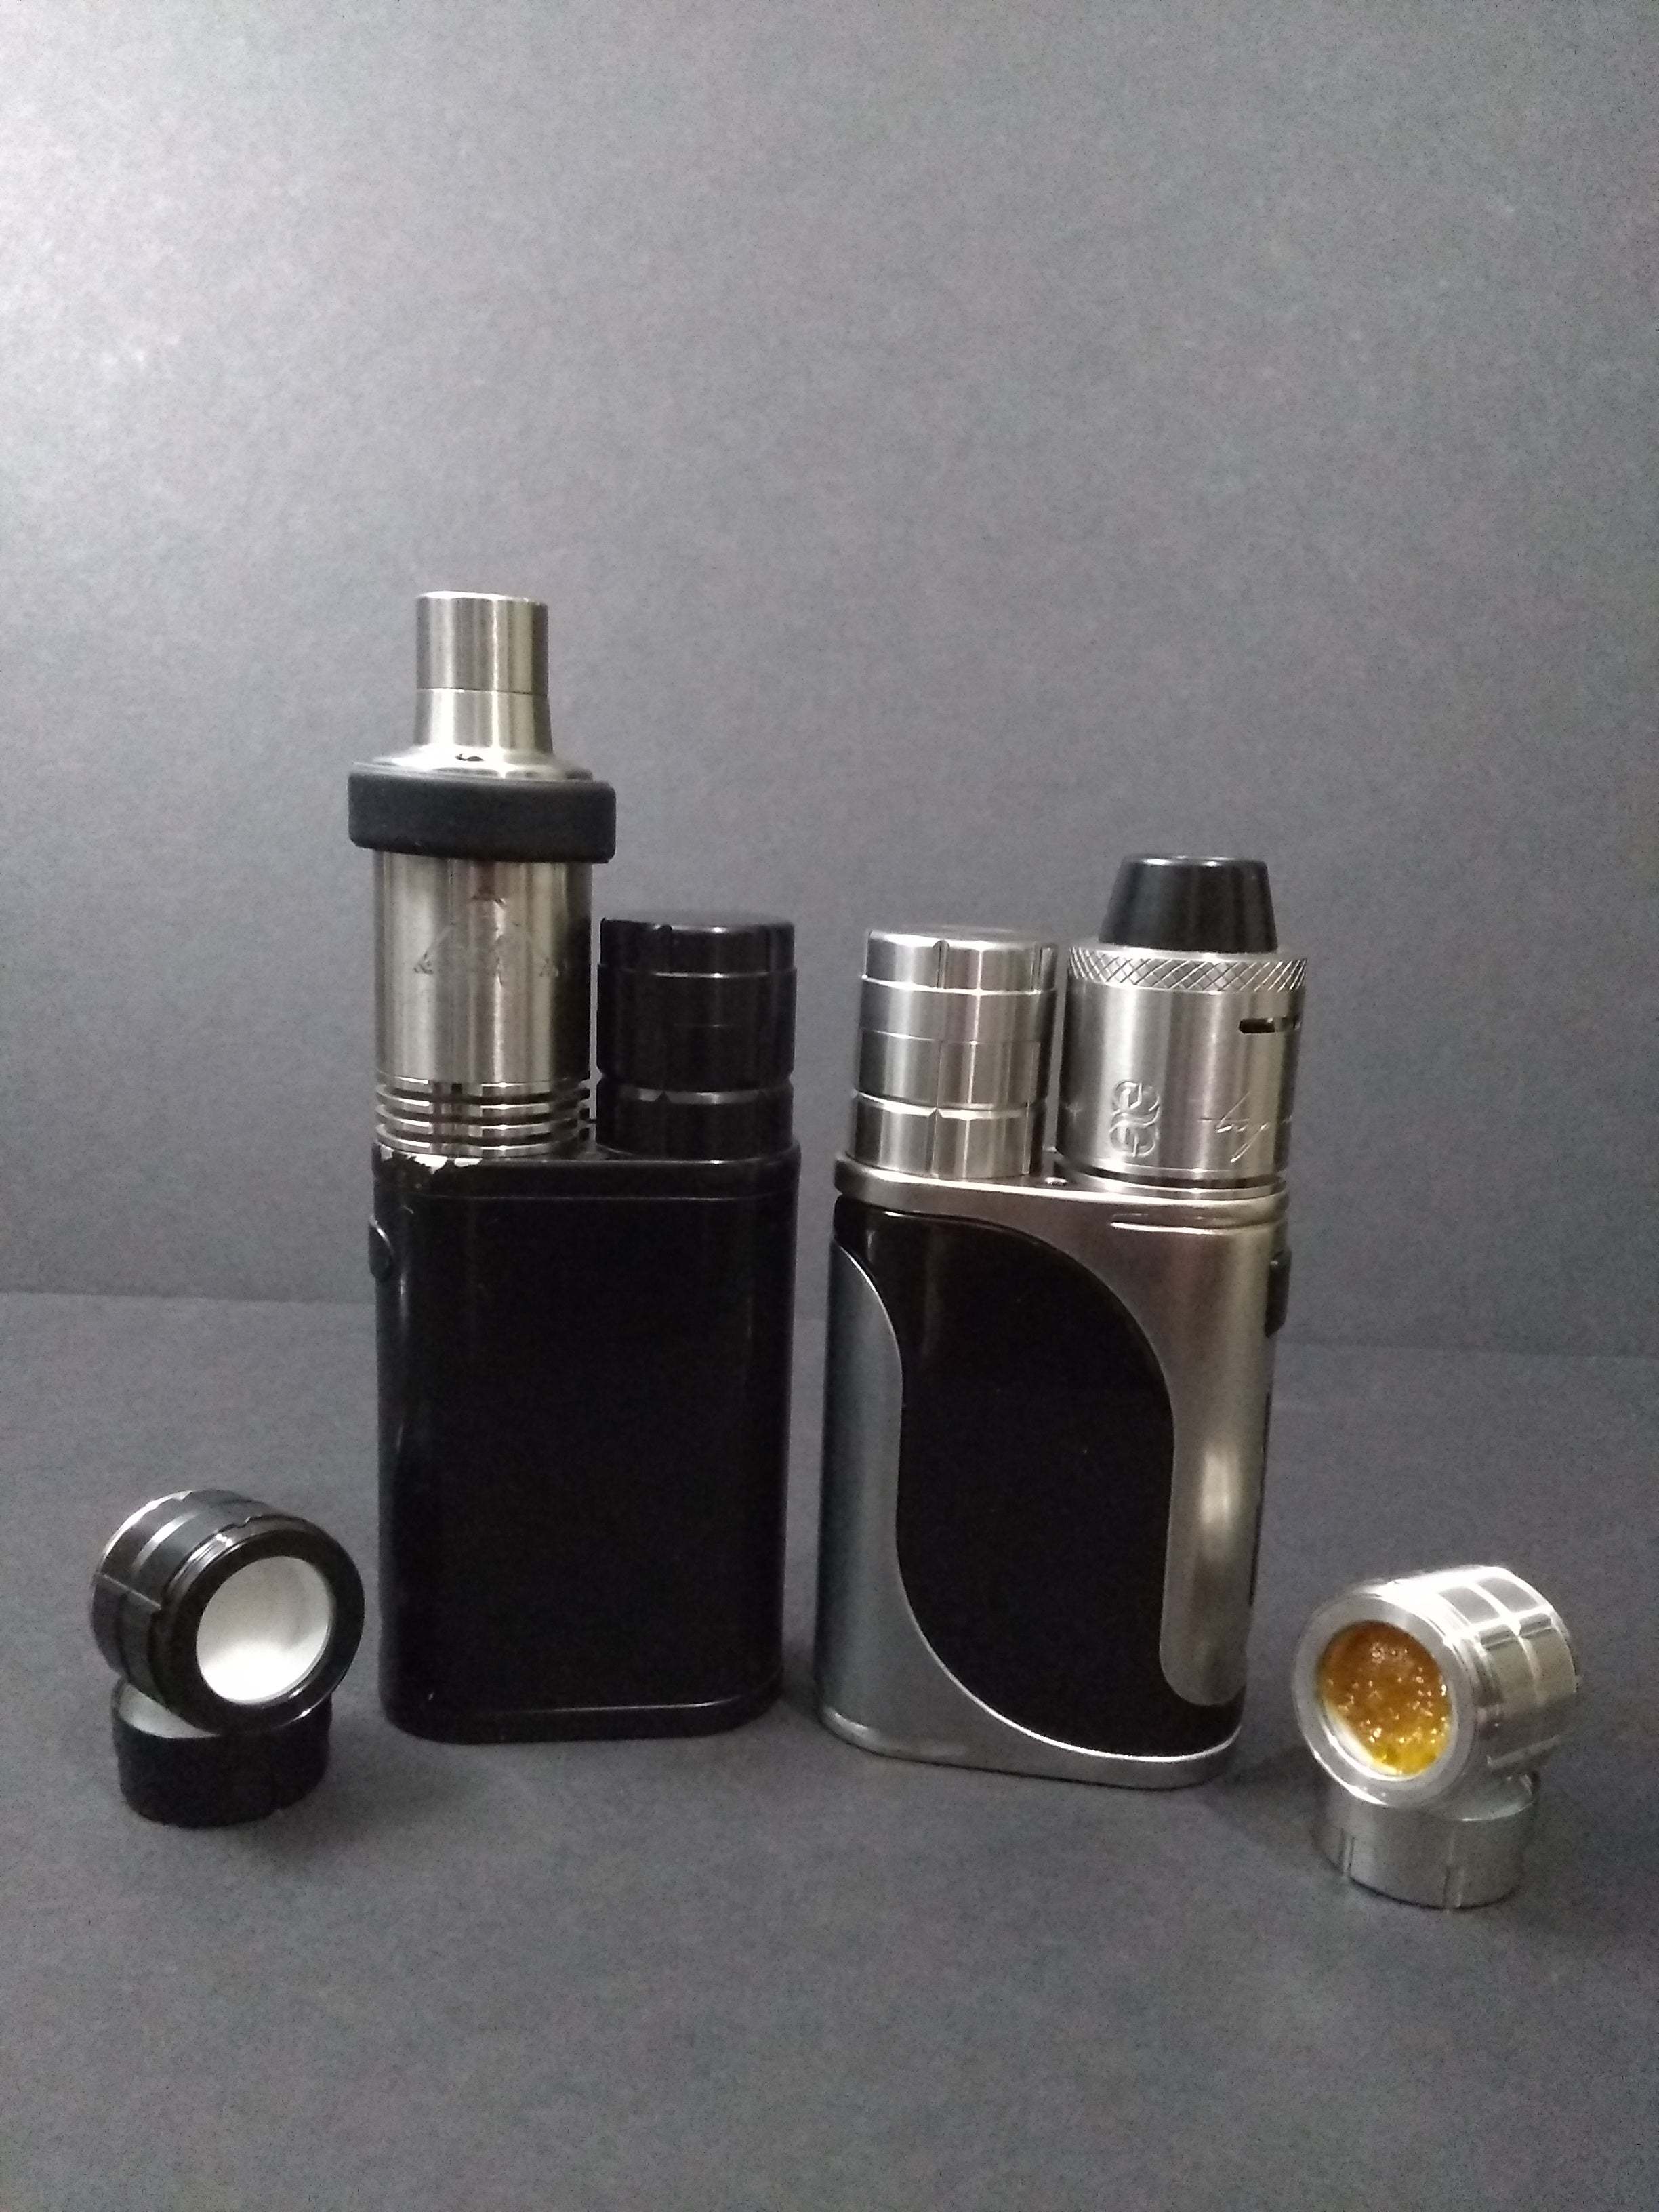 Black and Silver Pico Stash Caps designed by u/uitpersen mounted on Pico mods with DC V4 Crucible and TRVP V2 - Cap leaded with Legal Concentrate - Image by uitpersen